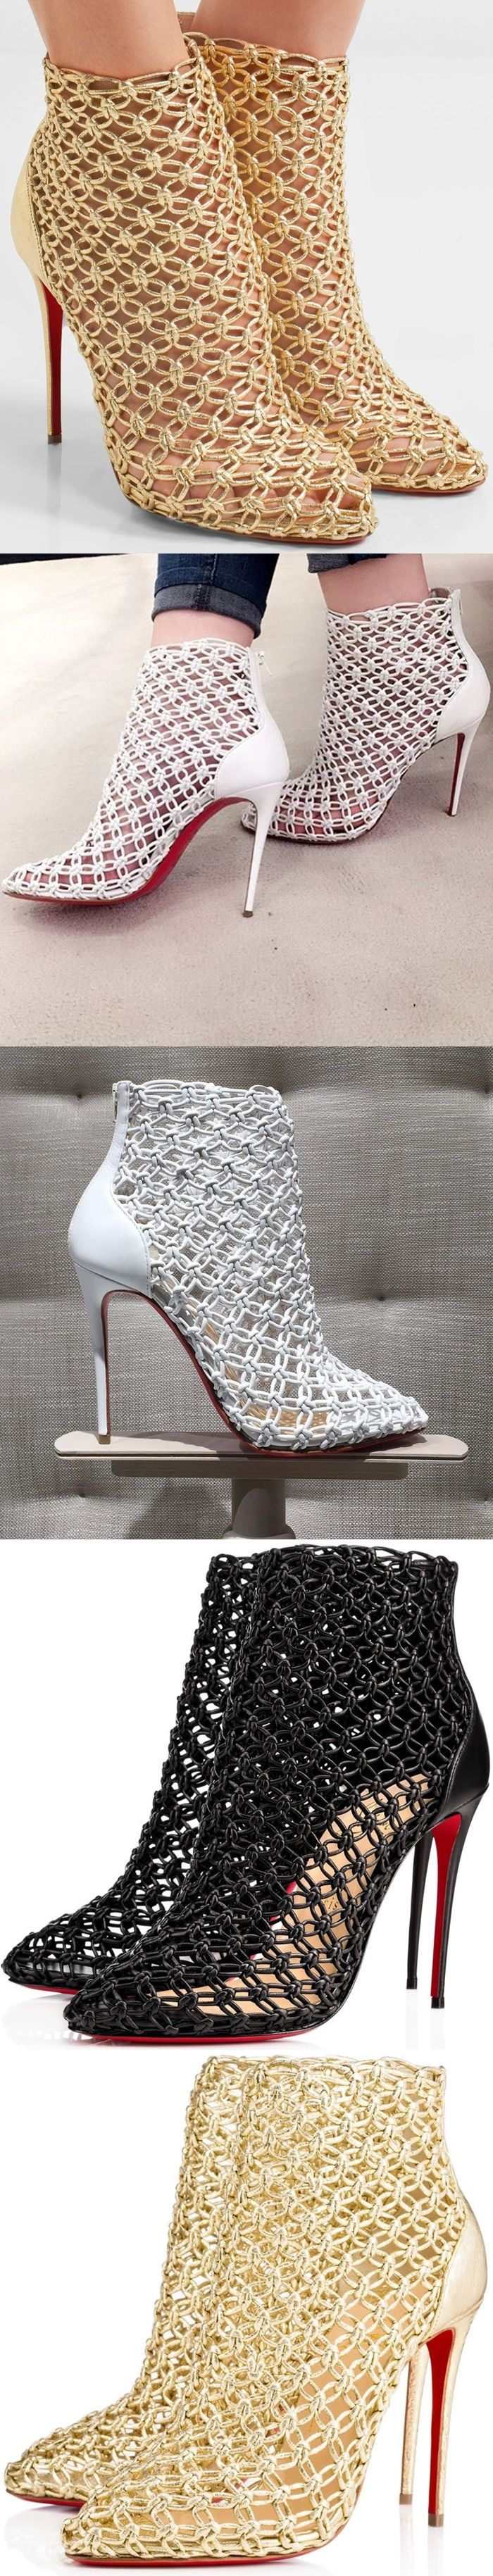 Christian Louboutin's Intricately Knotted 'Andaloulou' Ankle Boots